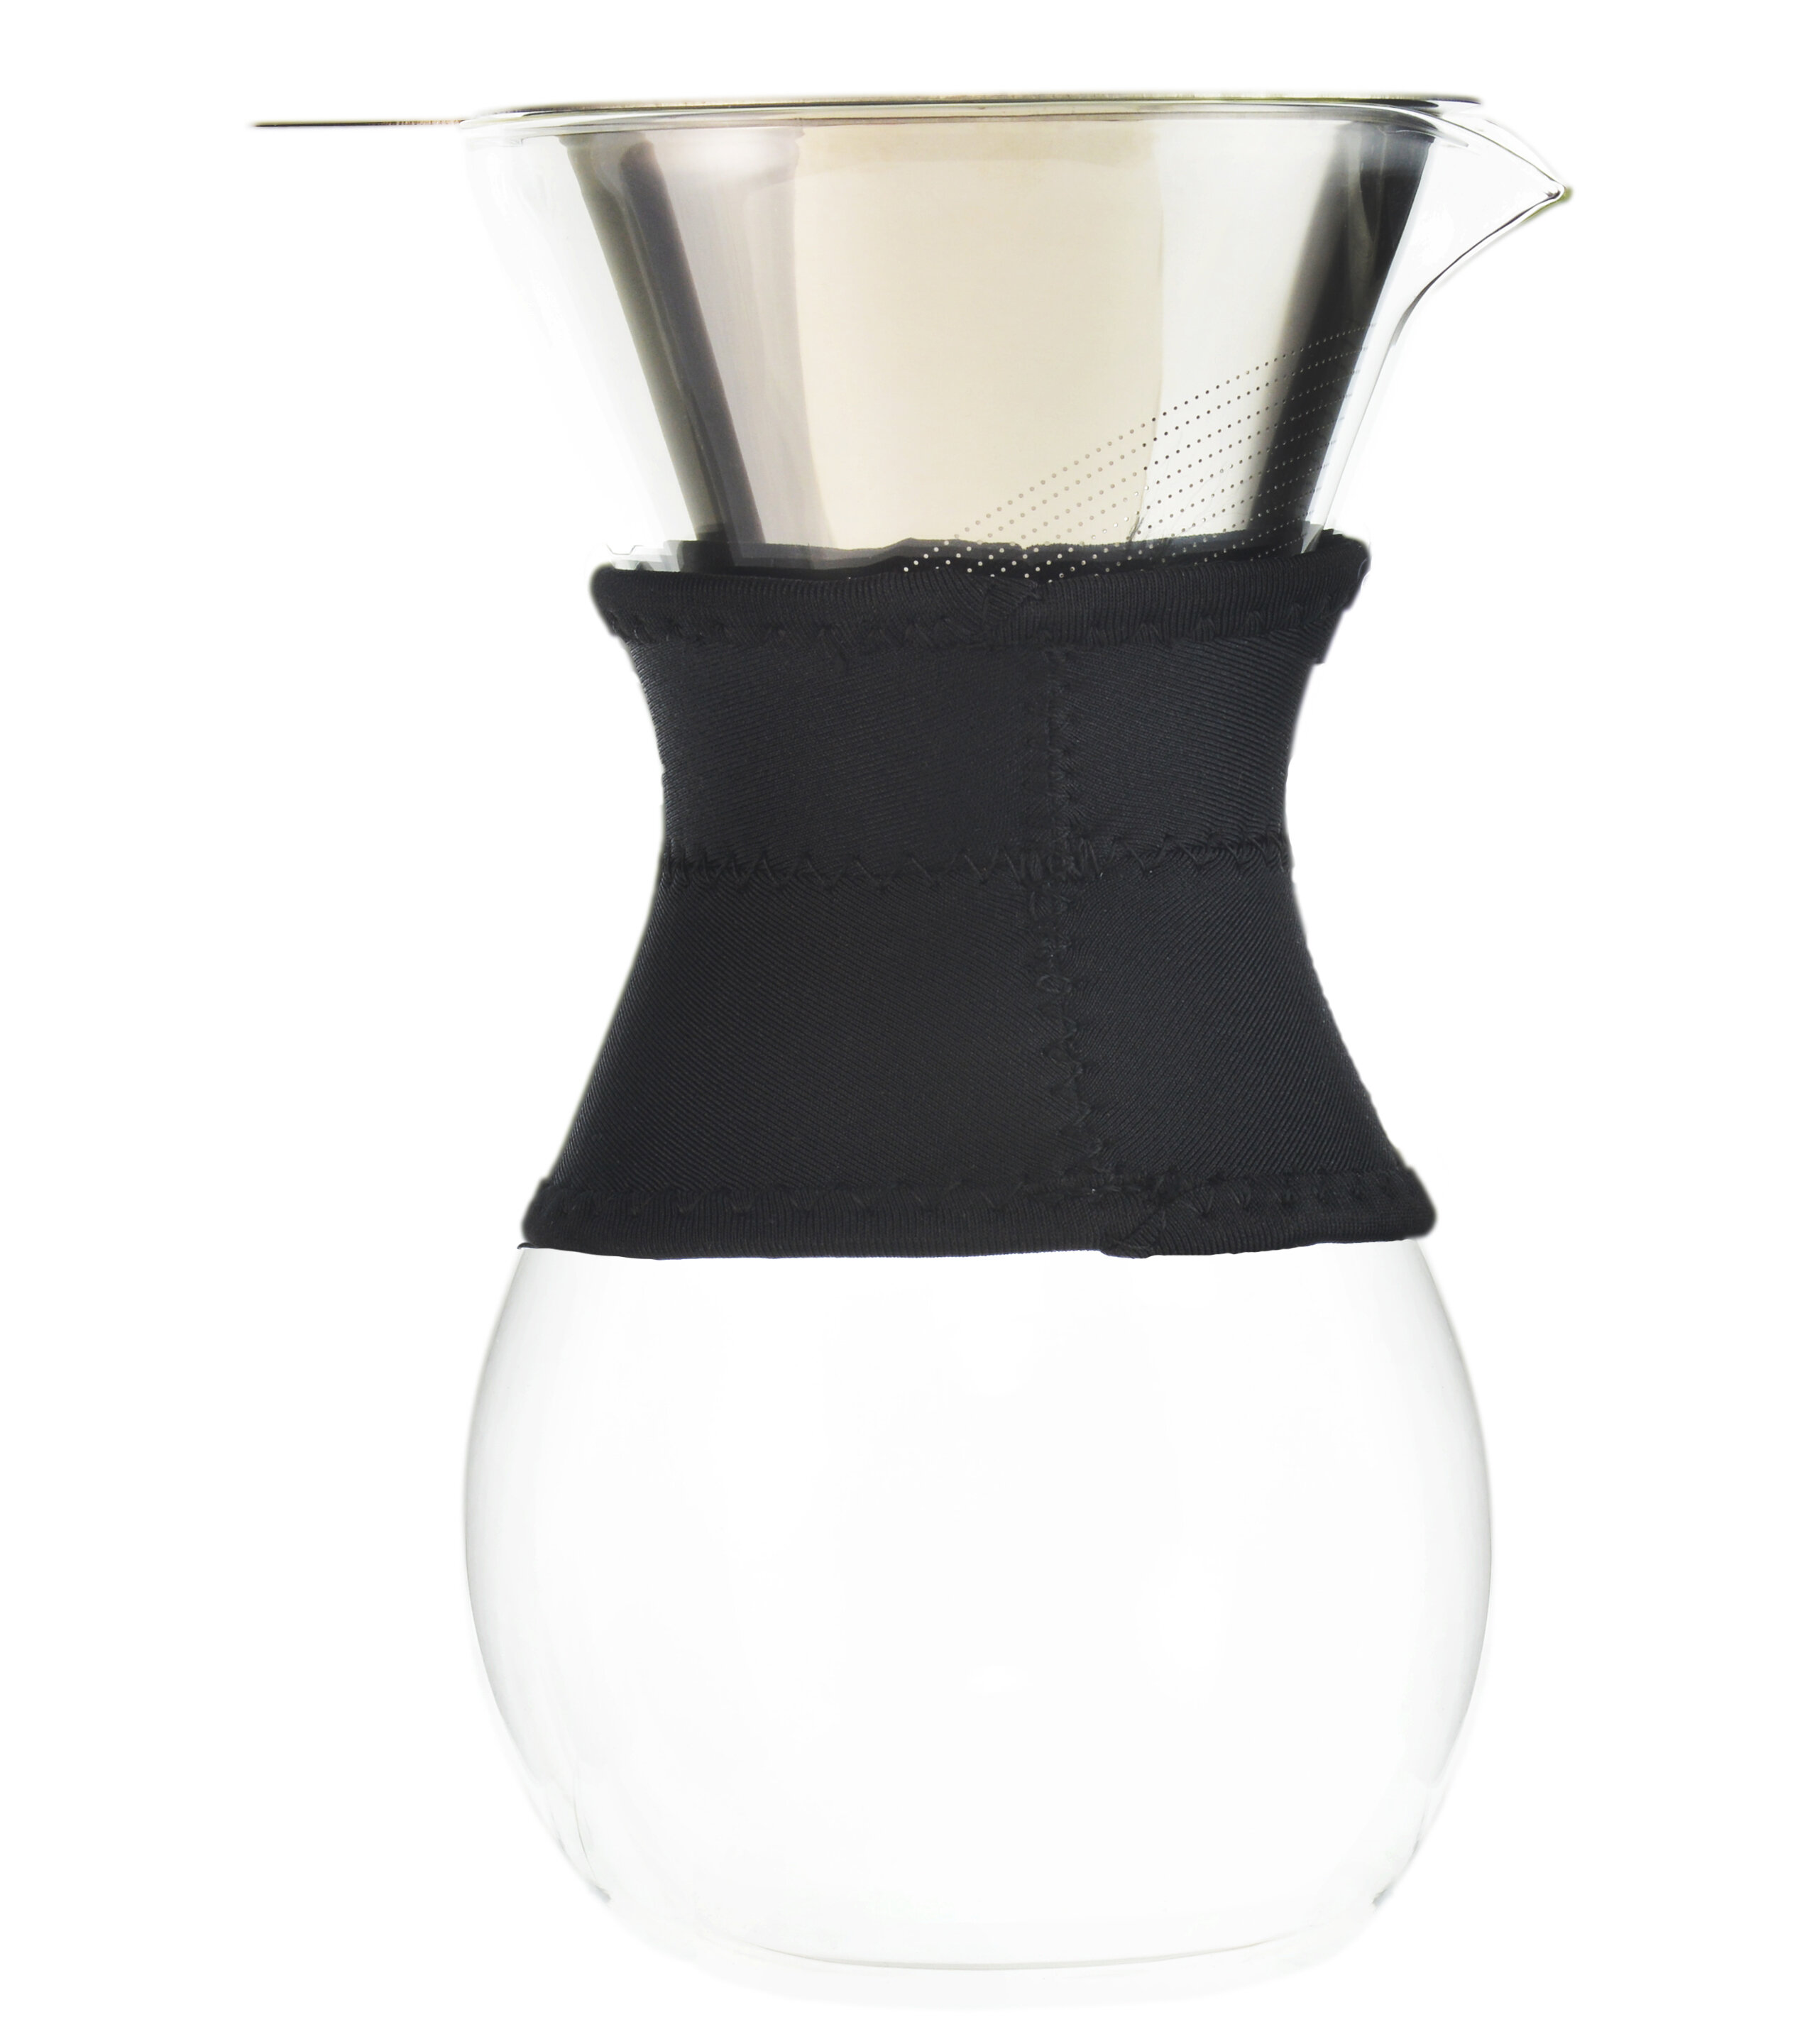 15604148d12 Grosche Grosche Austin Pour Over Coffee Maker   Reviews